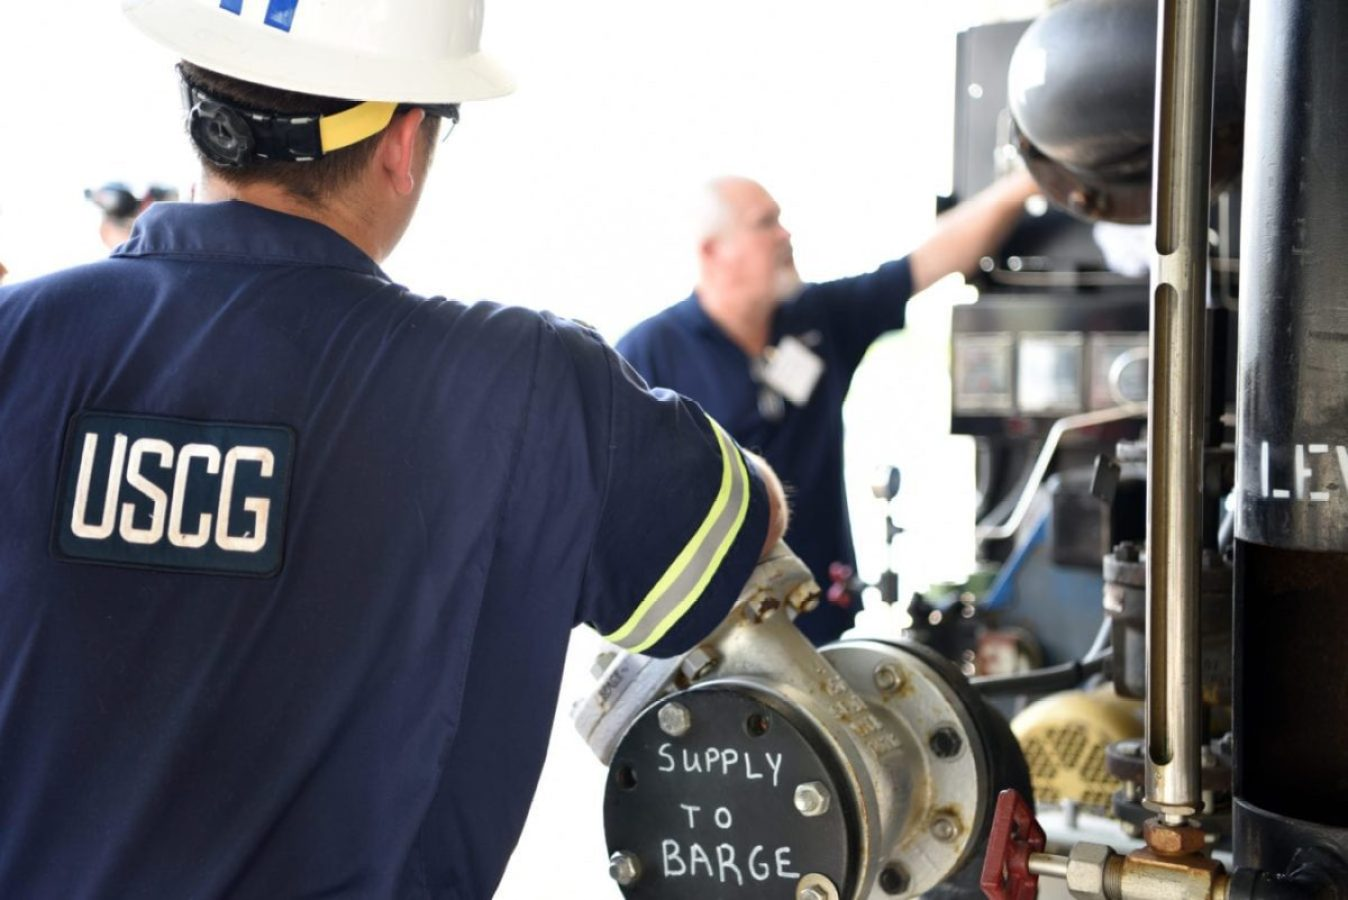 : Coast Guard marine inspectors from units across the country receive hands-on barge training from industry partners in Channelview, Texas, Sept. 10, 2019. Members received training both inside the classroom and while visiting industry experts onsite.